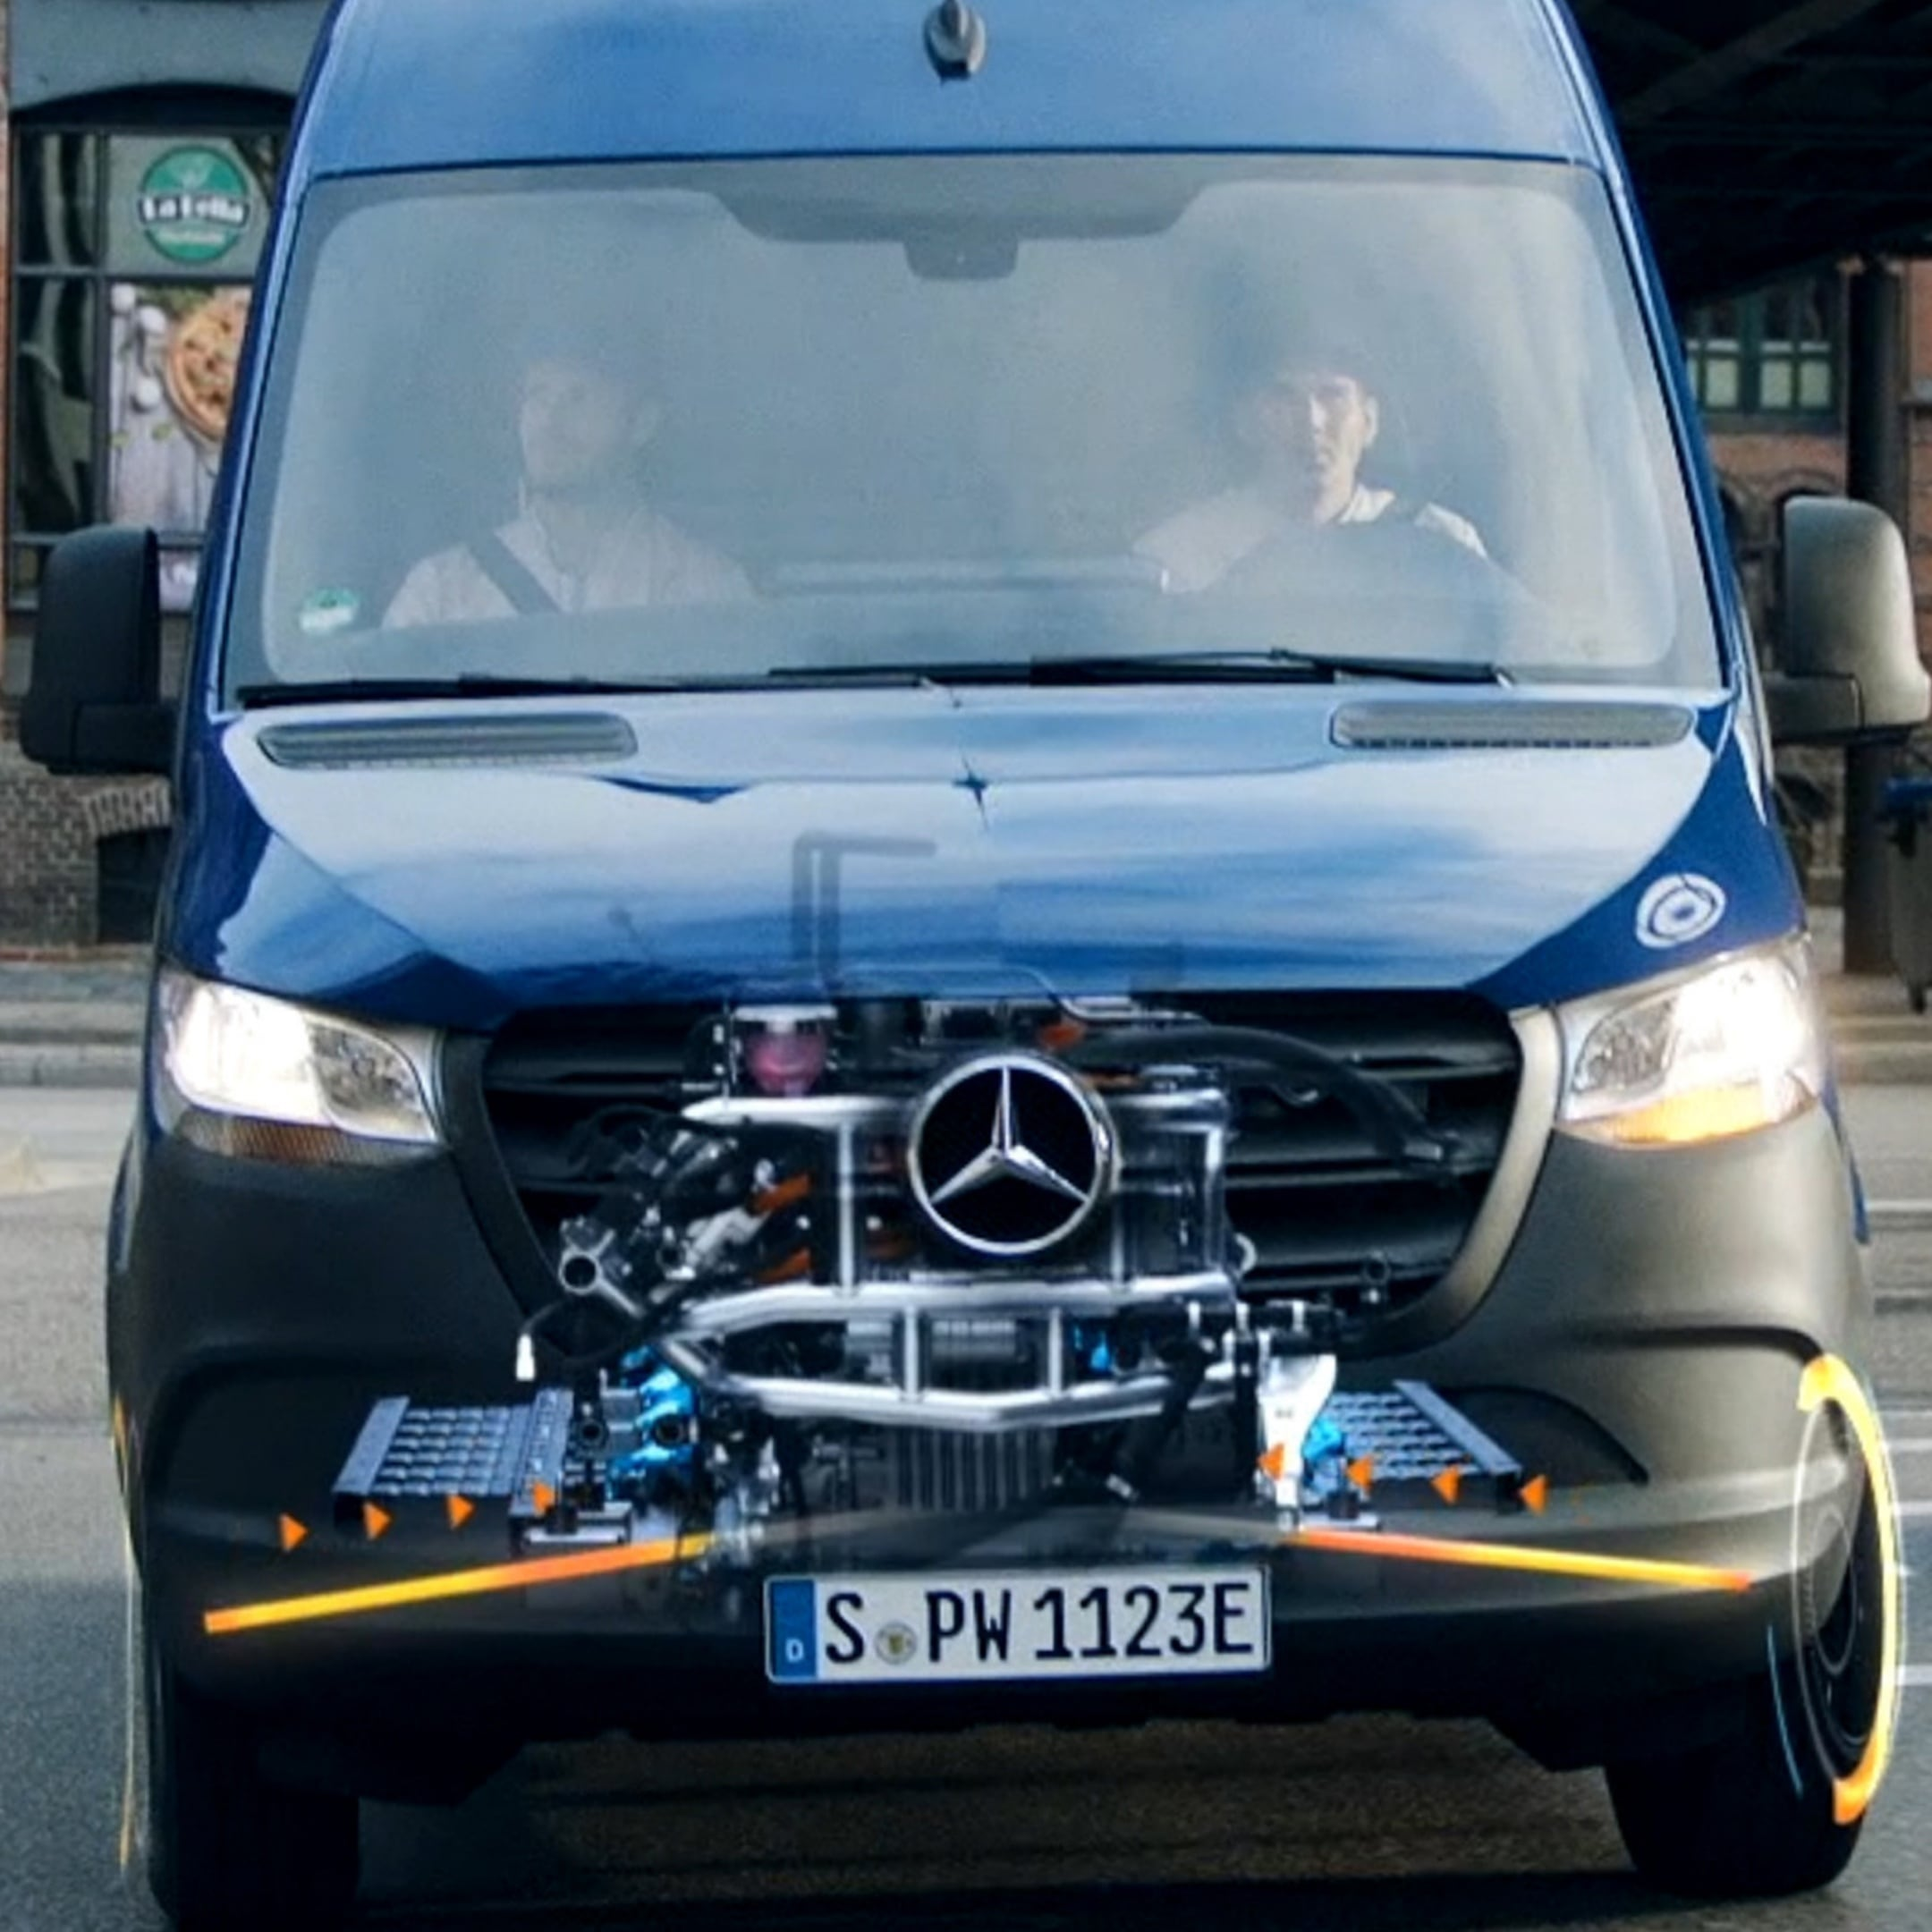 A Mercedes-Benz Sprinter driving along a road, with animated display of the e-drive